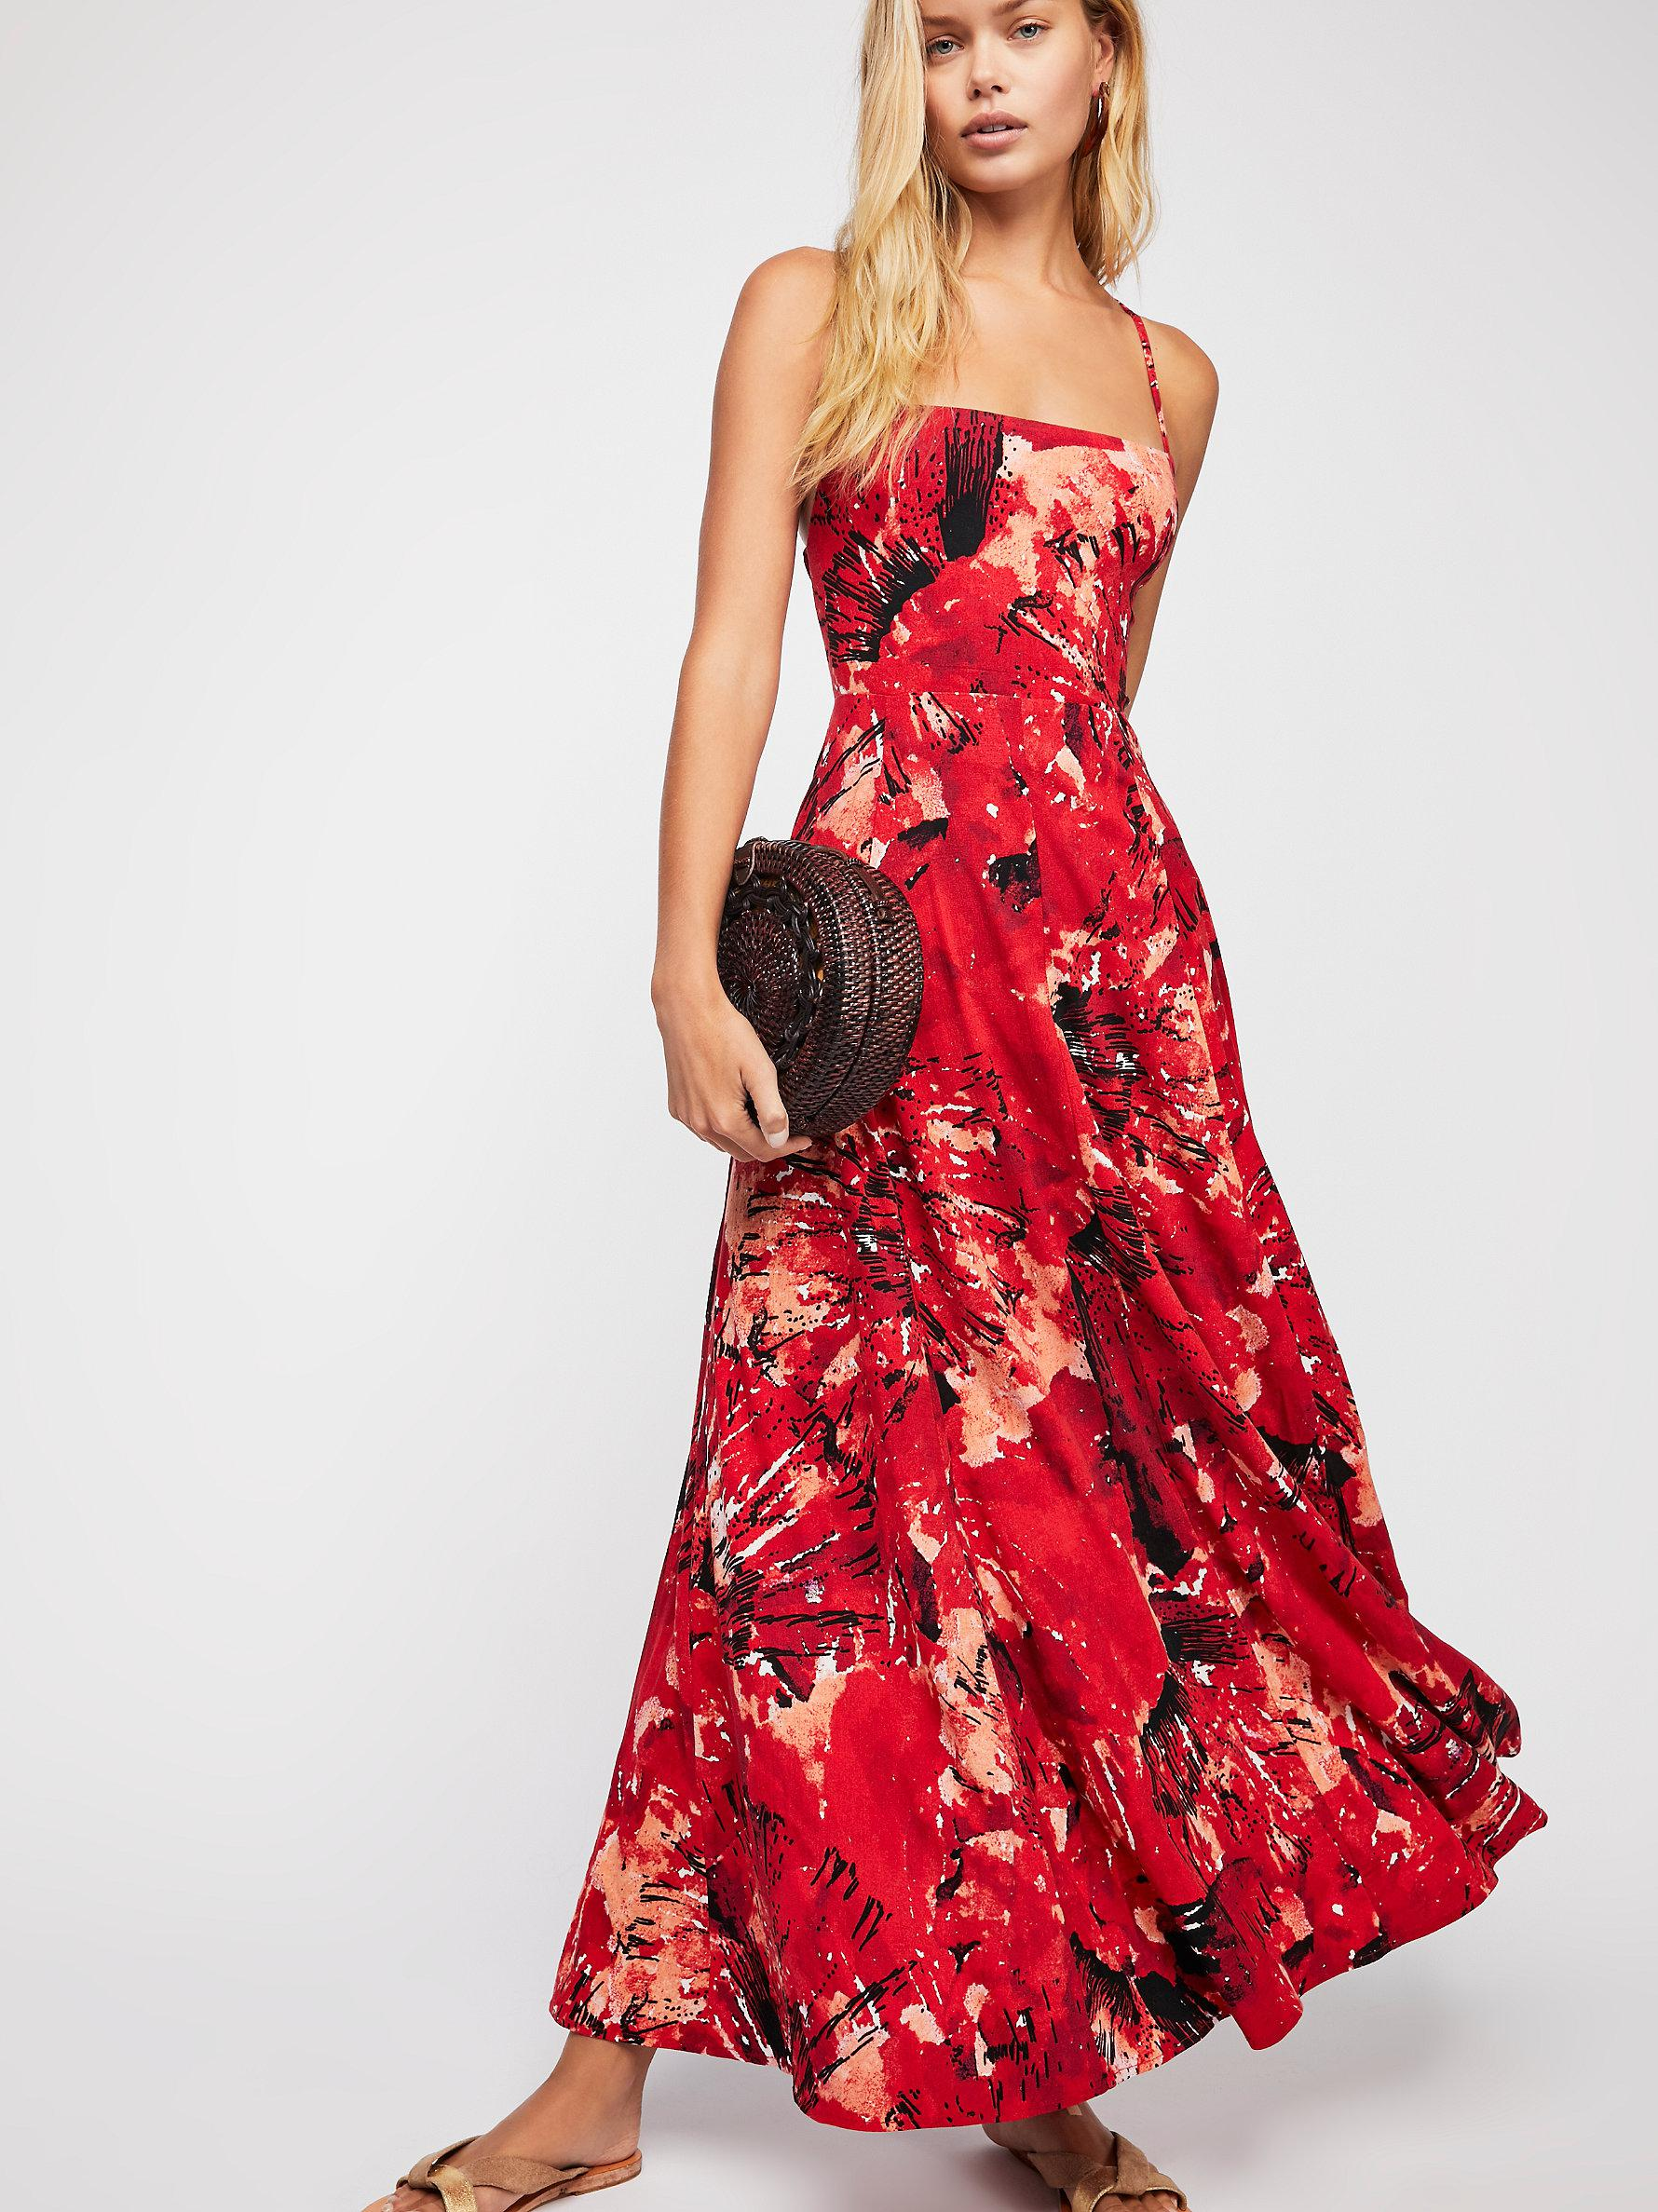 Lyst - Free People Nellie Printed Maxi Dress in Red